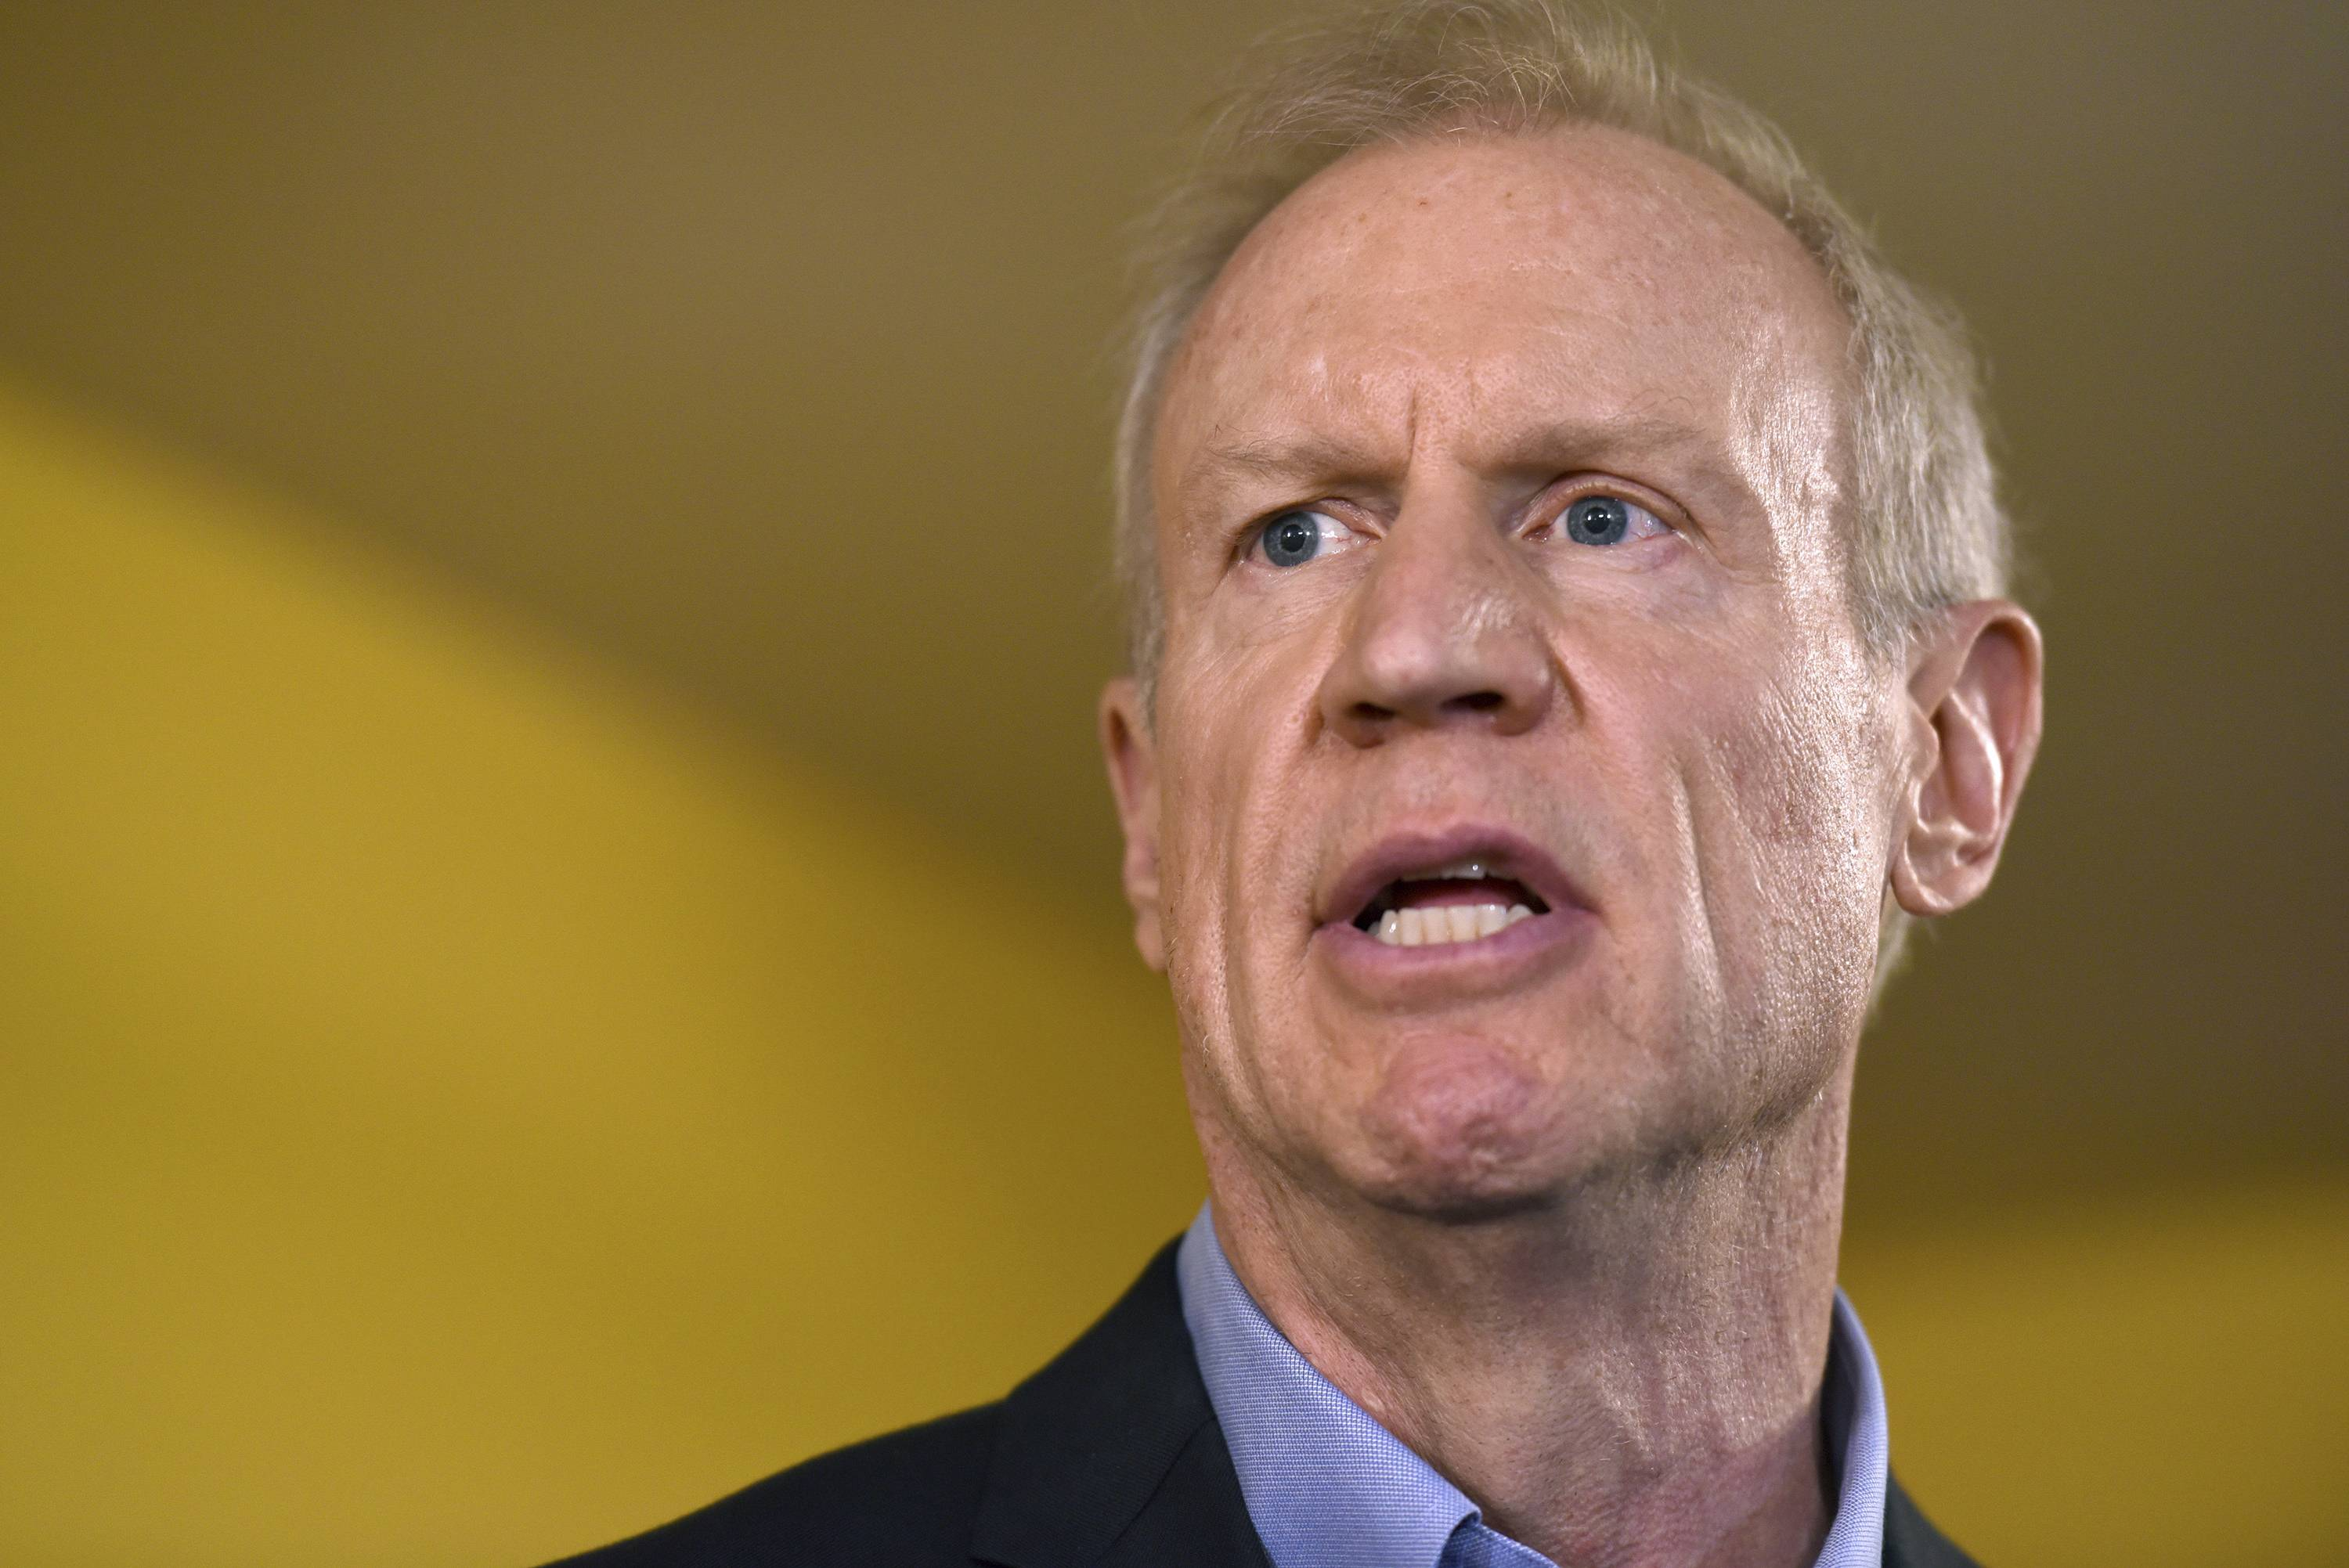 Rauner: Madigan promotes property taxes for personal profit